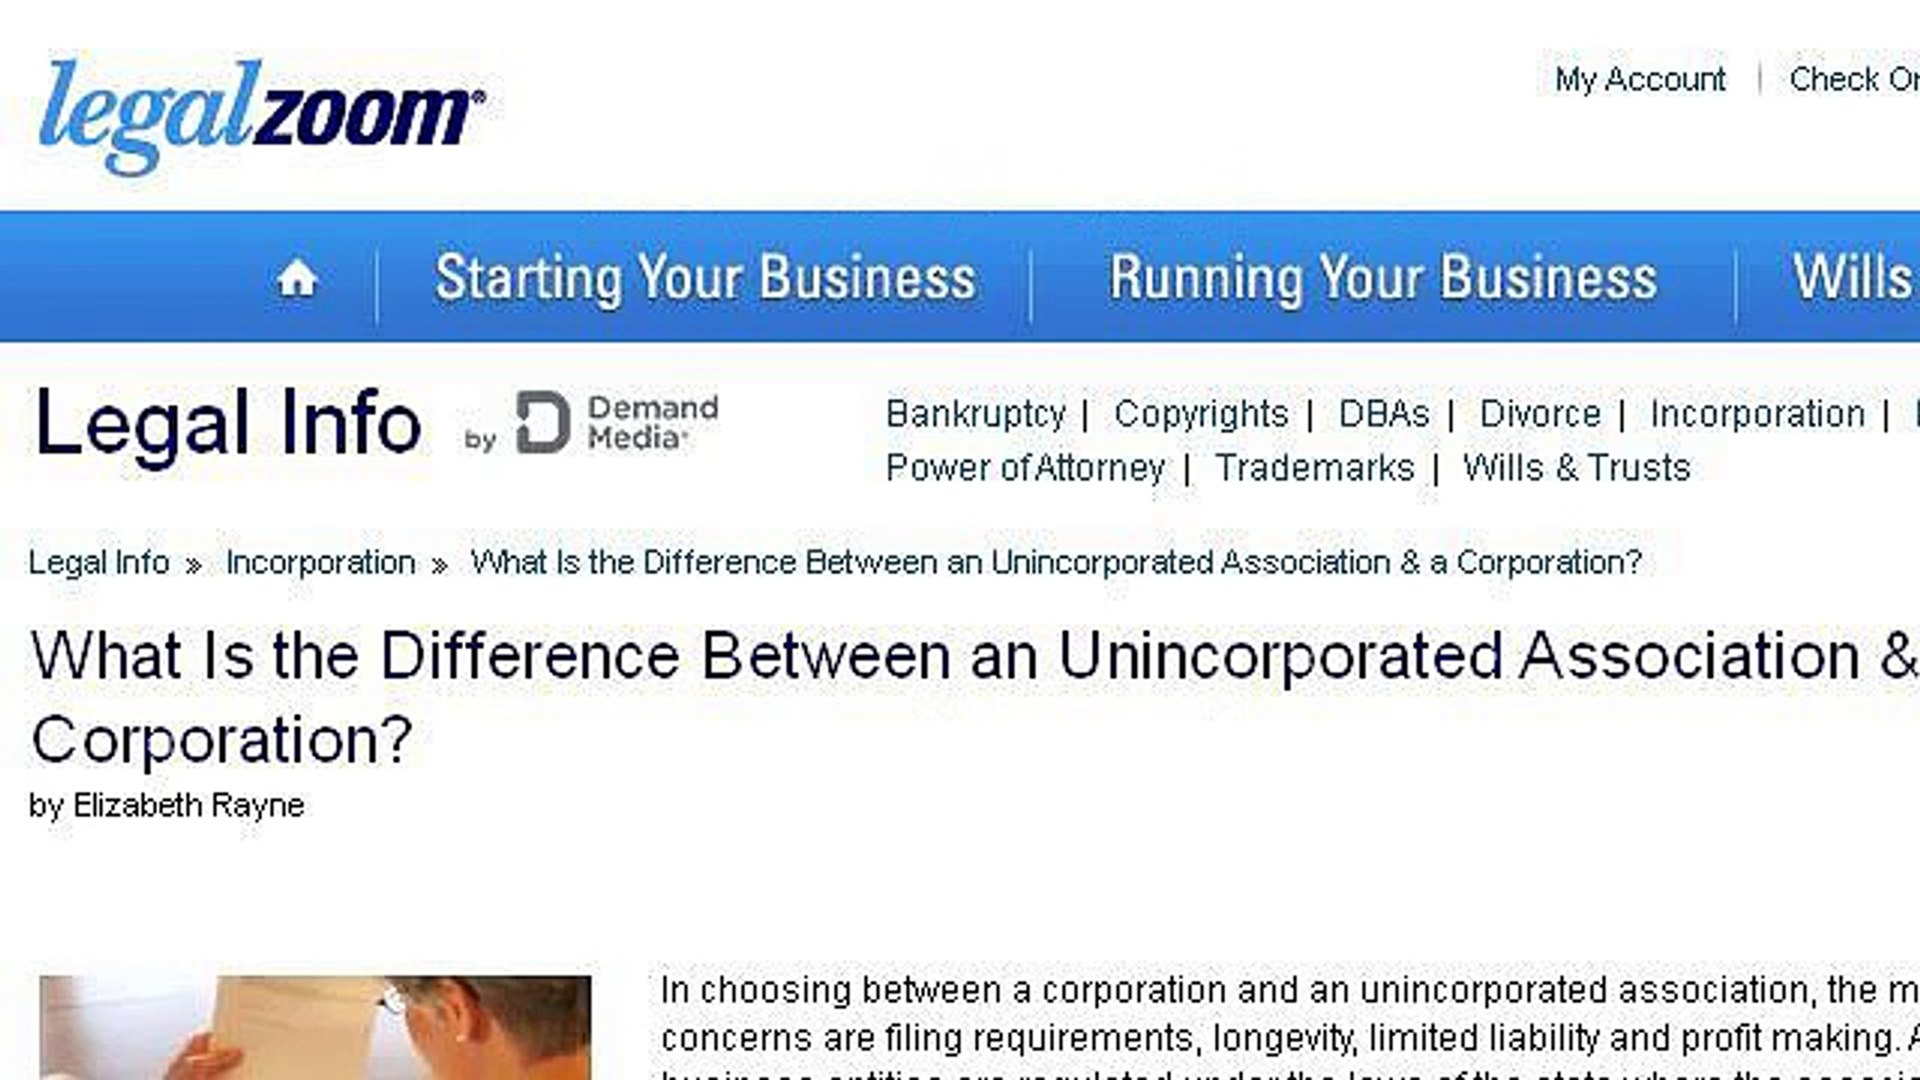 What Are The Differences Between An LLC And A Non-Profit?